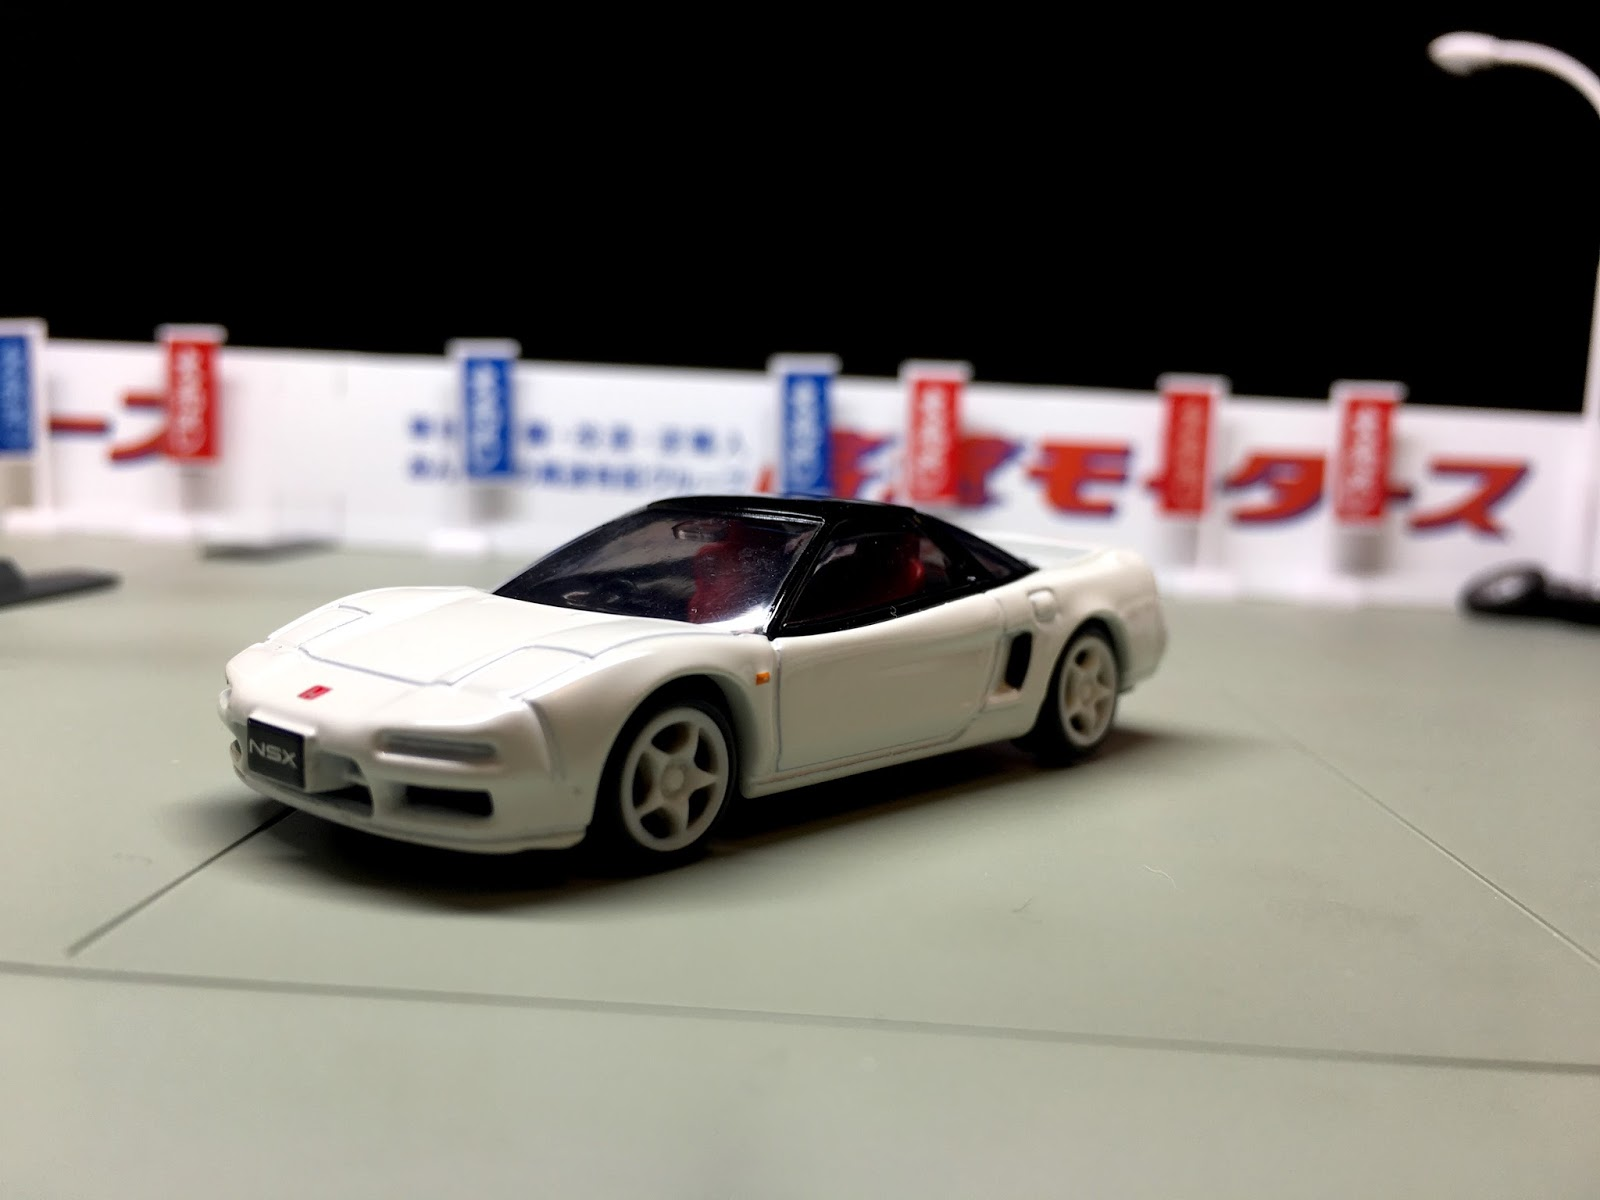 Tomica Premium 90's Legends: Nissan 300ZX & Acura NSX, by